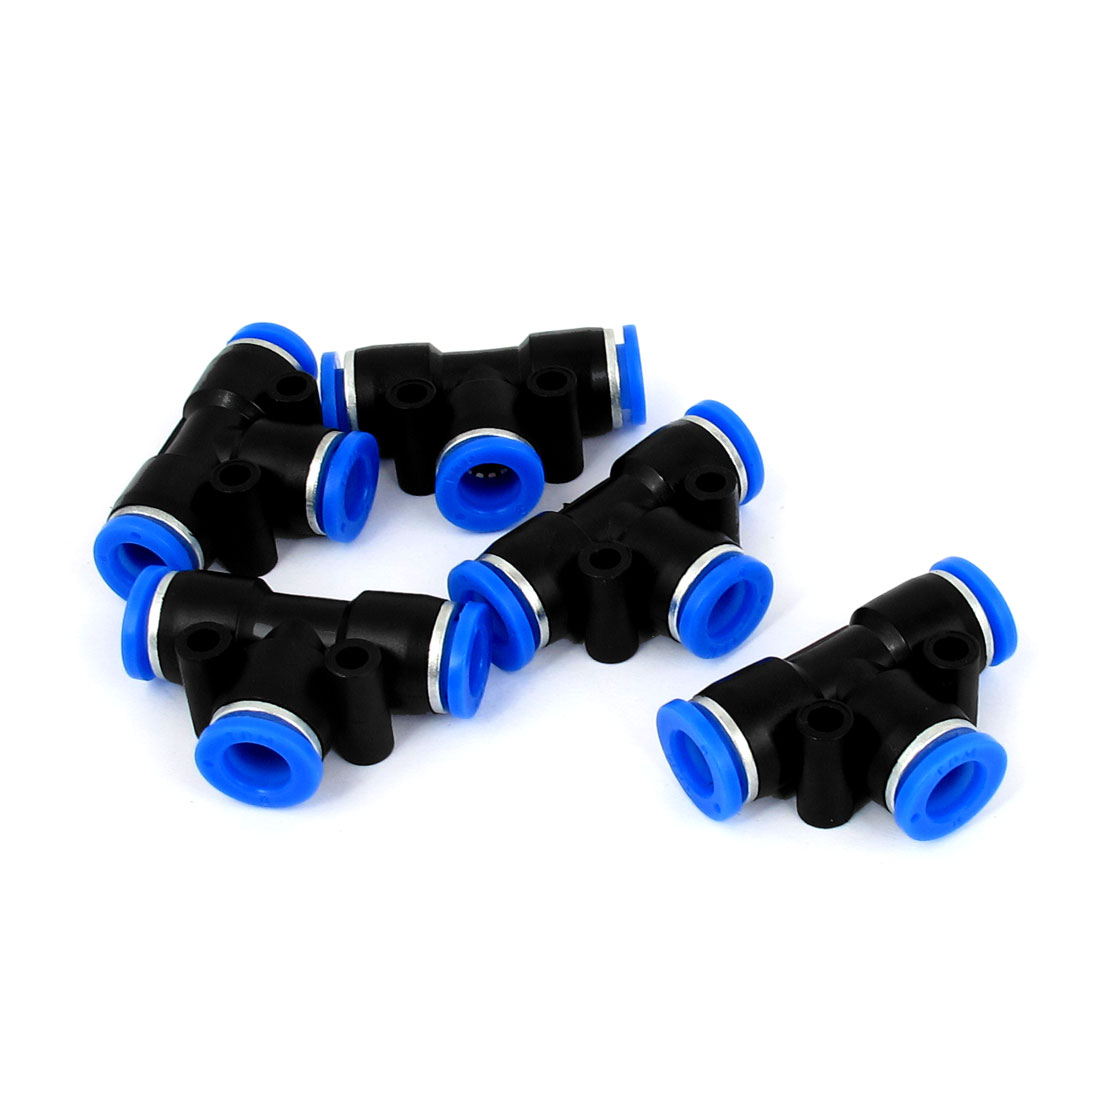 5pcs 3 Way T Shaped 8mm Inner Dia Pipe Adapter Air Pneumatic Quick Joint Coupler Fitting